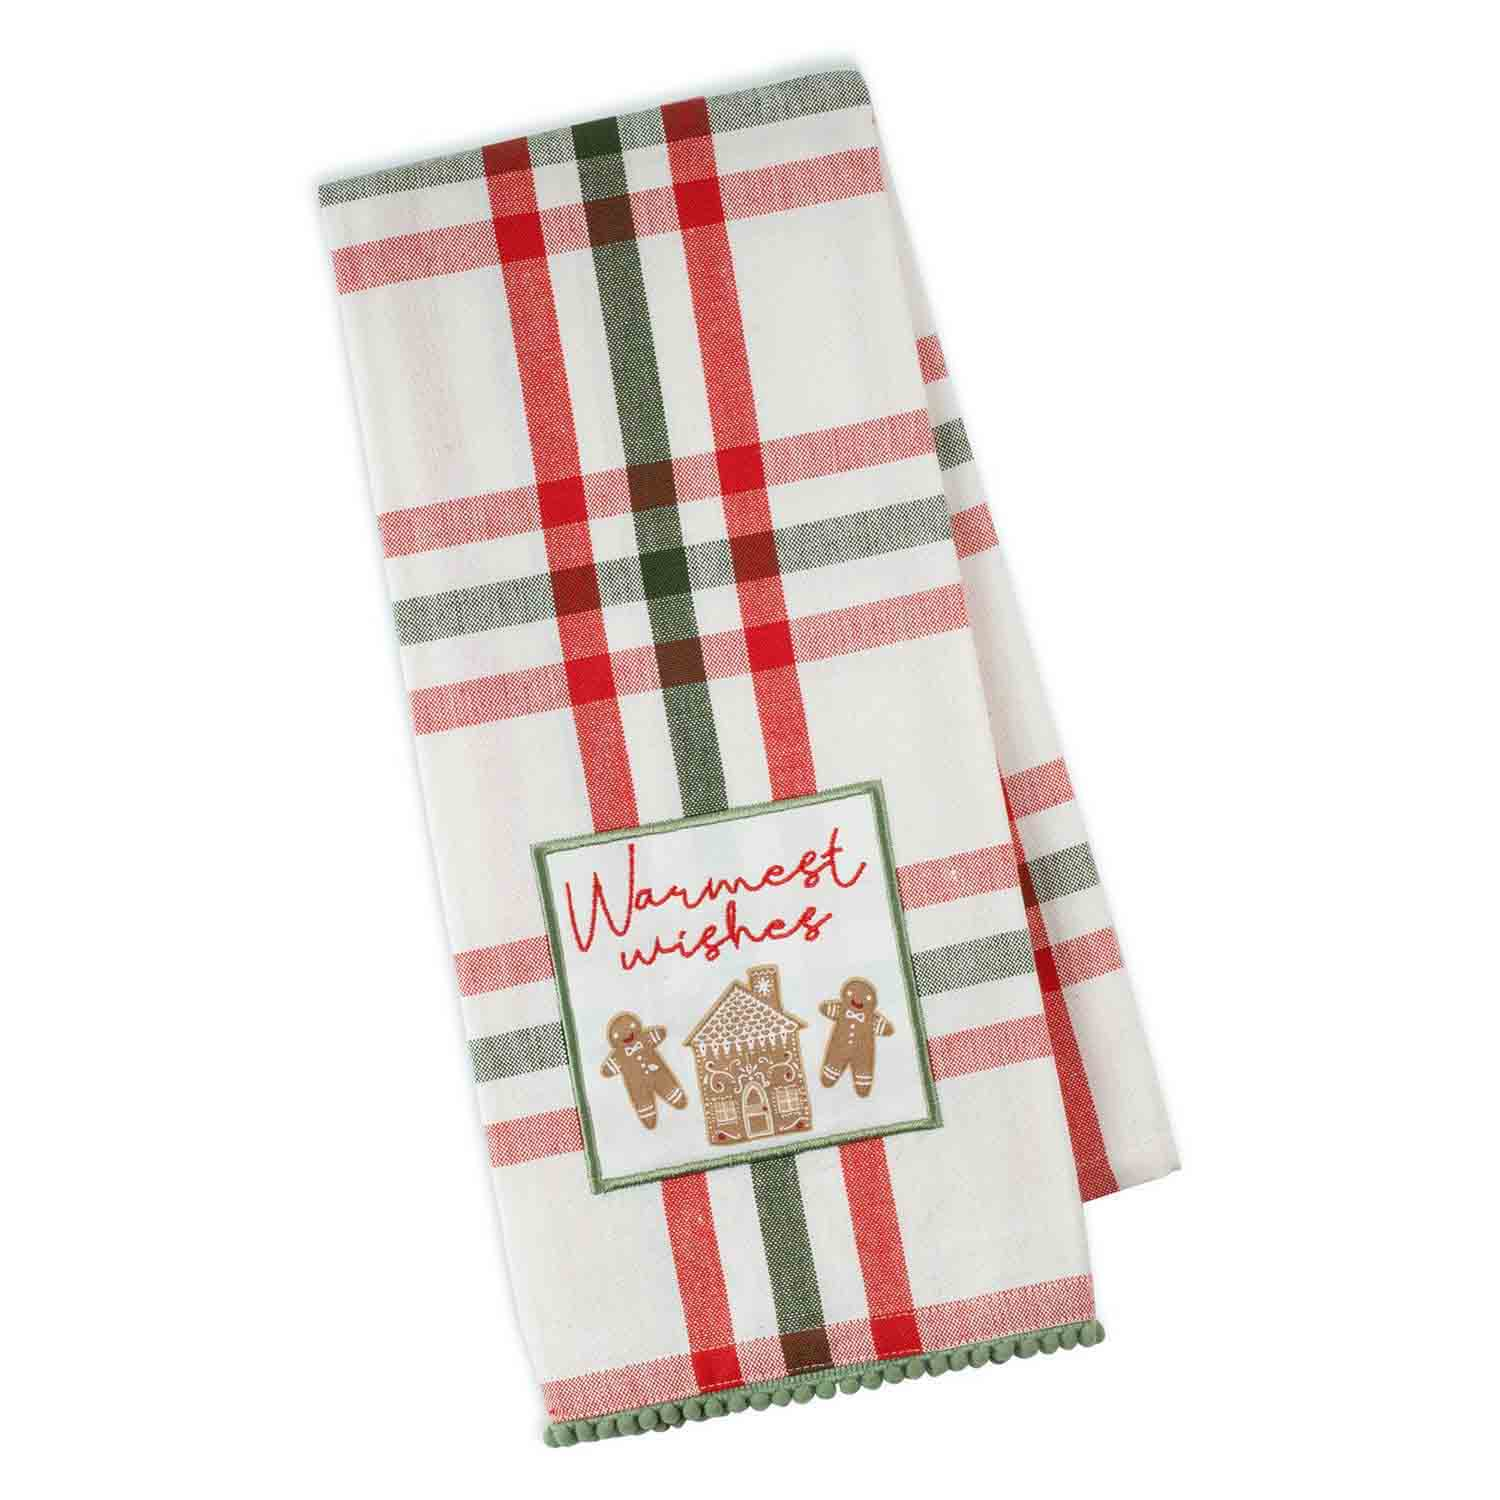 Warmest Wishes Gingerbread Dish Towel